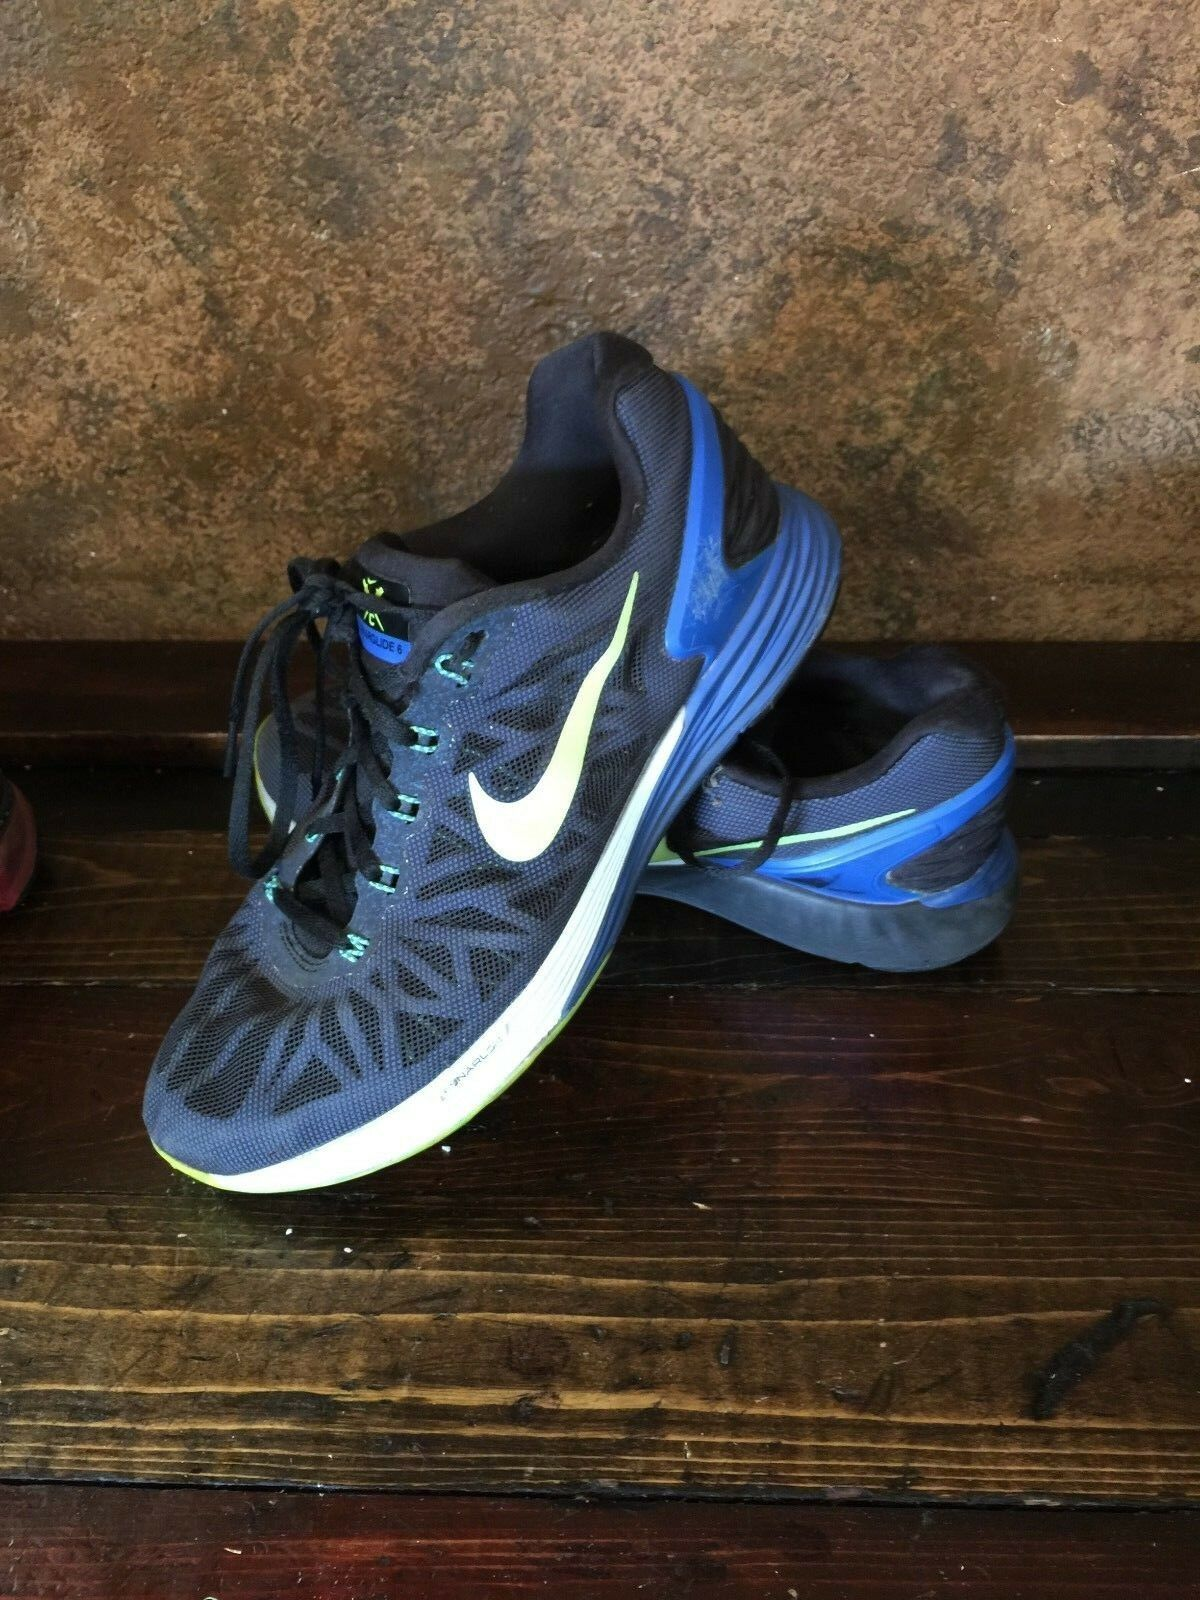 20586a Mens  NIKE Air Max Athletic - Running Training SHOES Lunar Glide 6 size 9